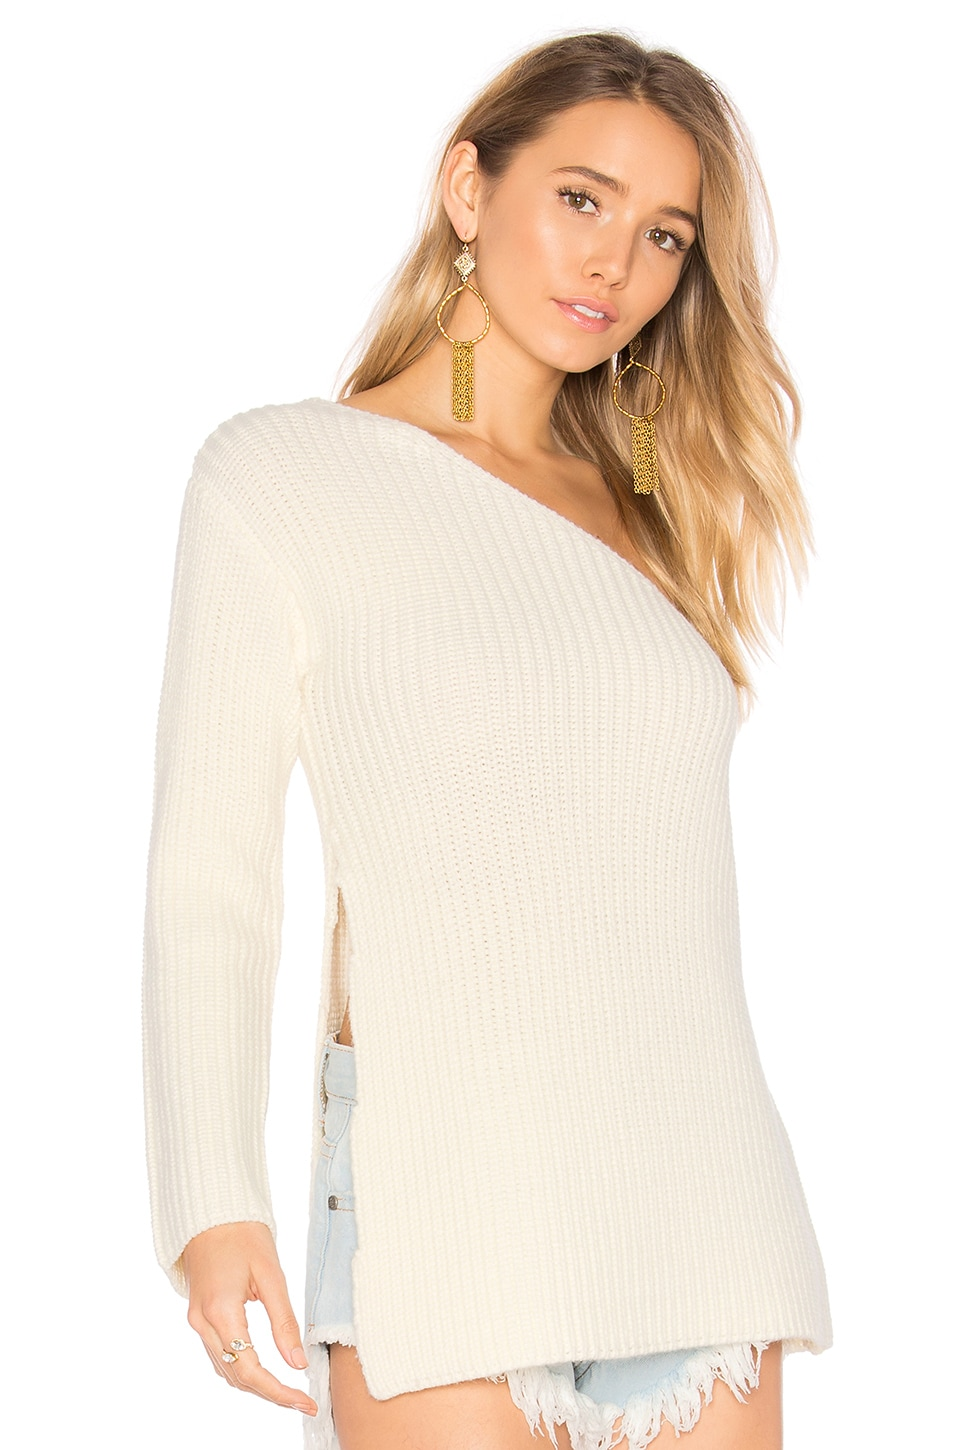 Jackson Sweater by Tularosa